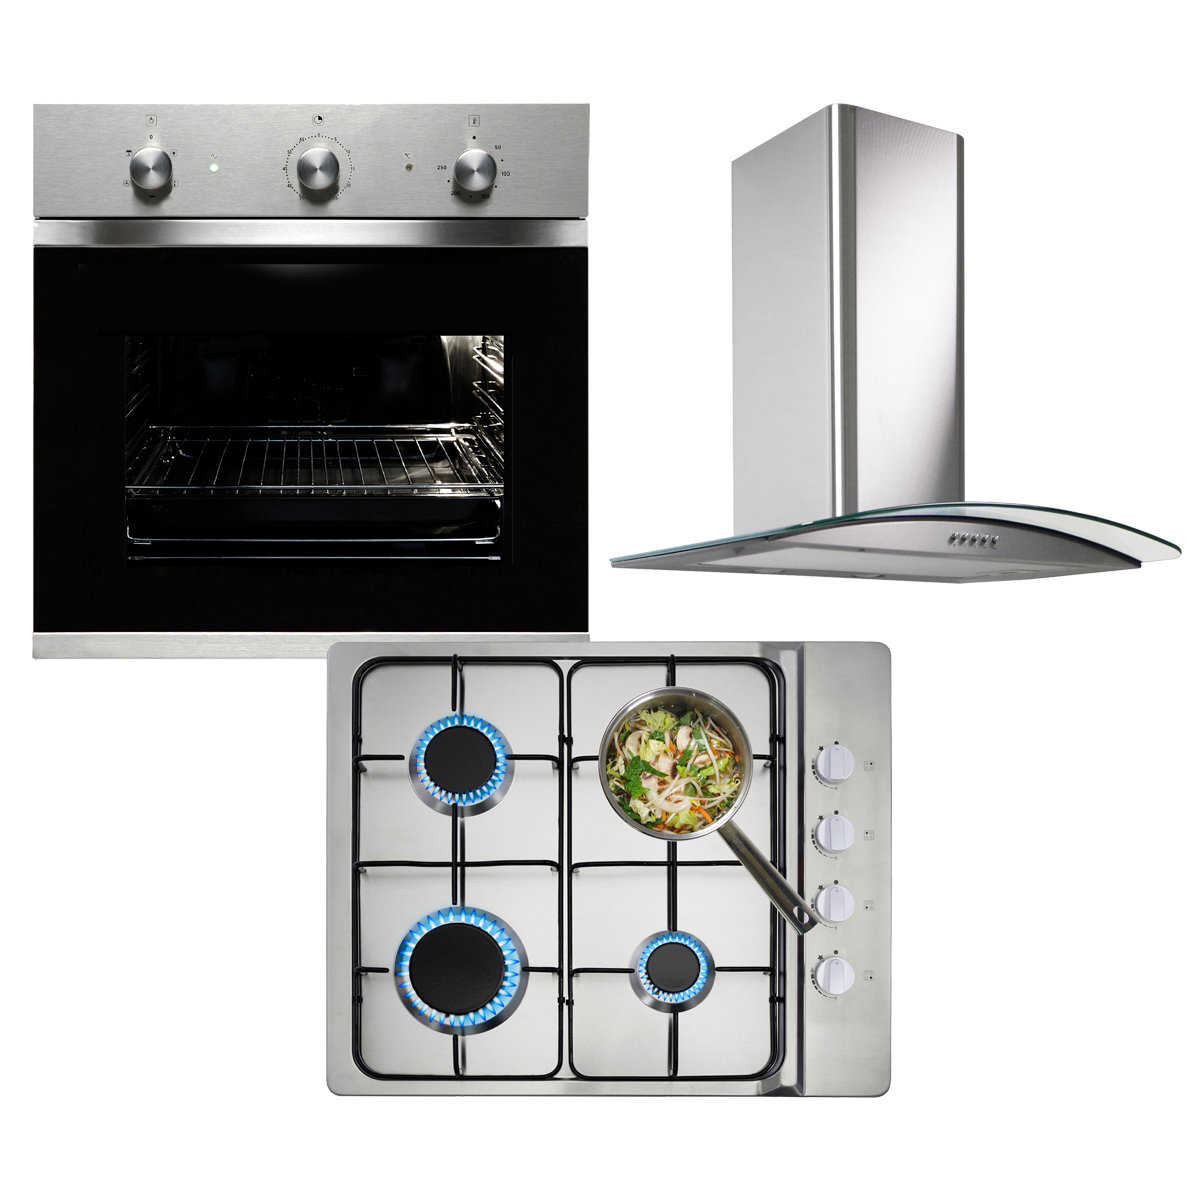 myappliances ref50053 electric fan oven gas hob and. Black Bedroom Furniture Sets. Home Design Ideas